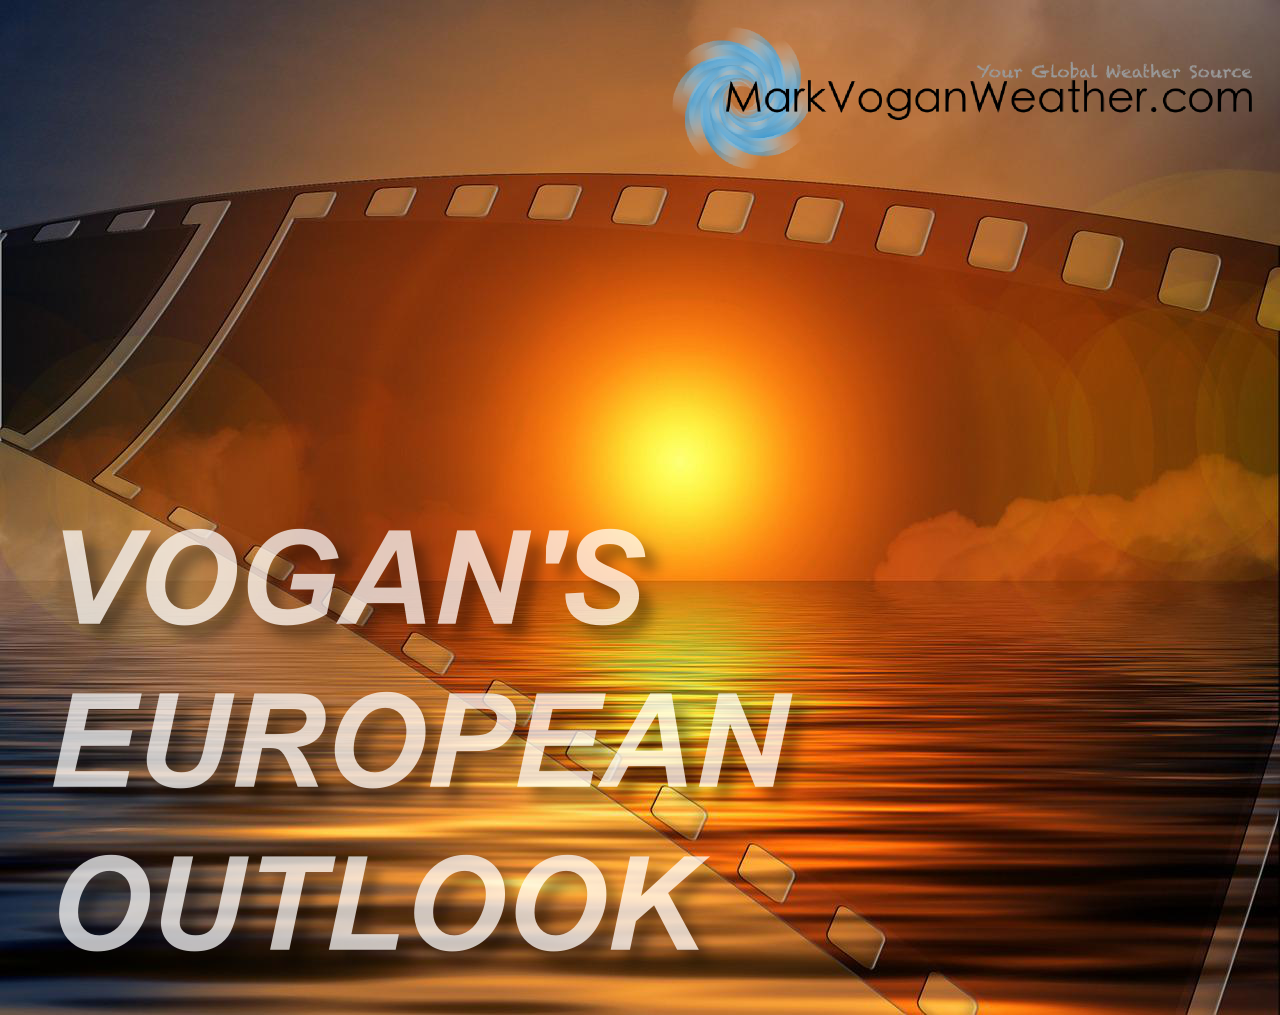 FRI 31 OCT: VOGAN'S EUROPEAN OUTLOOK